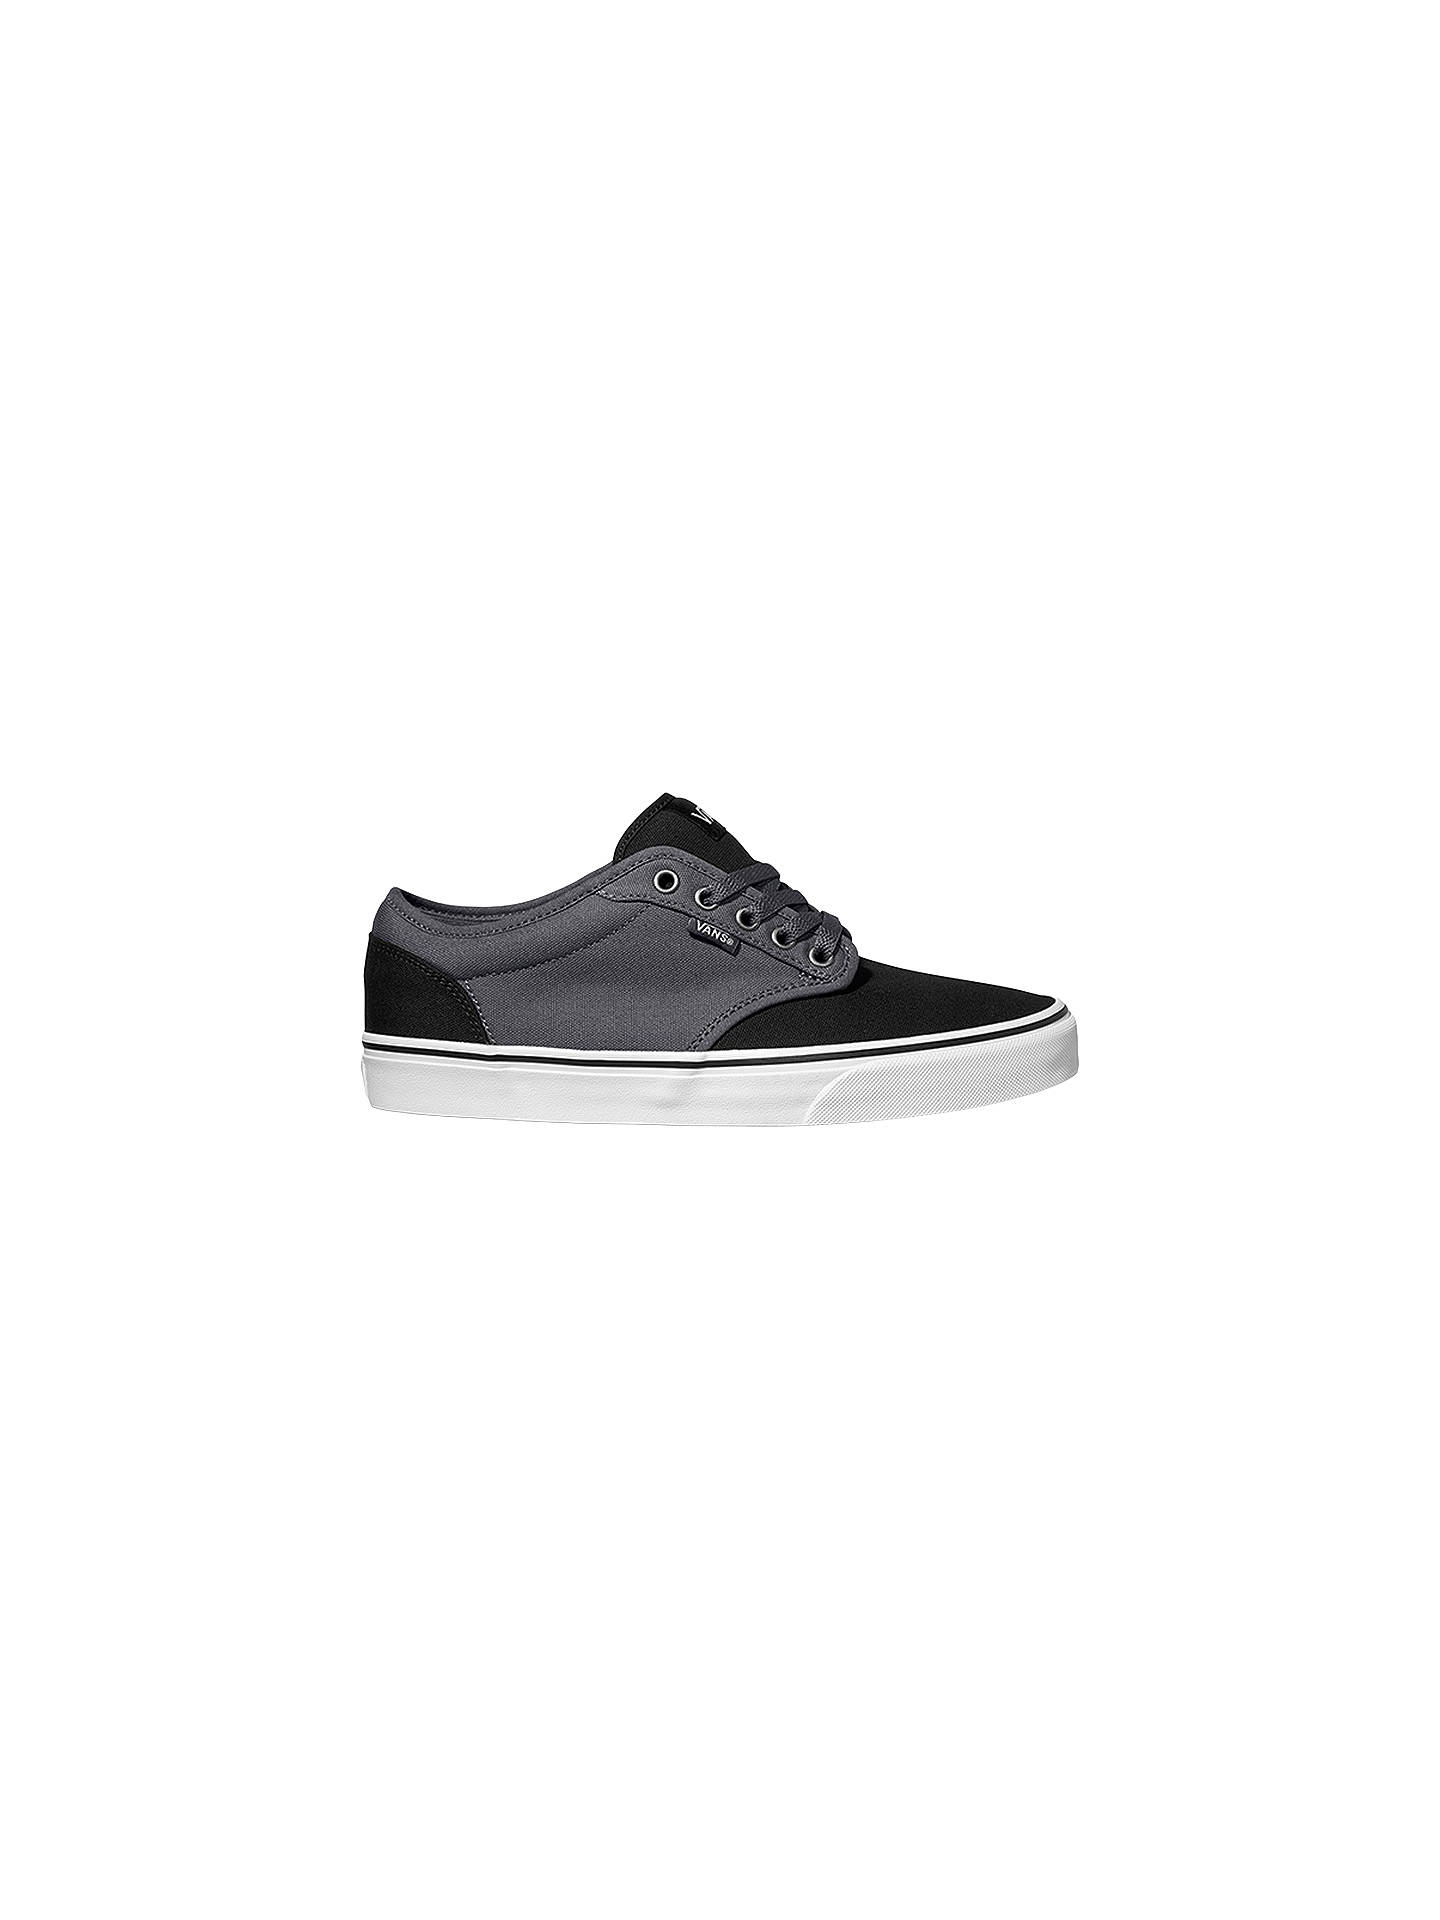 b93522c5d9 Buy Vans Atwood Canvas Trainers